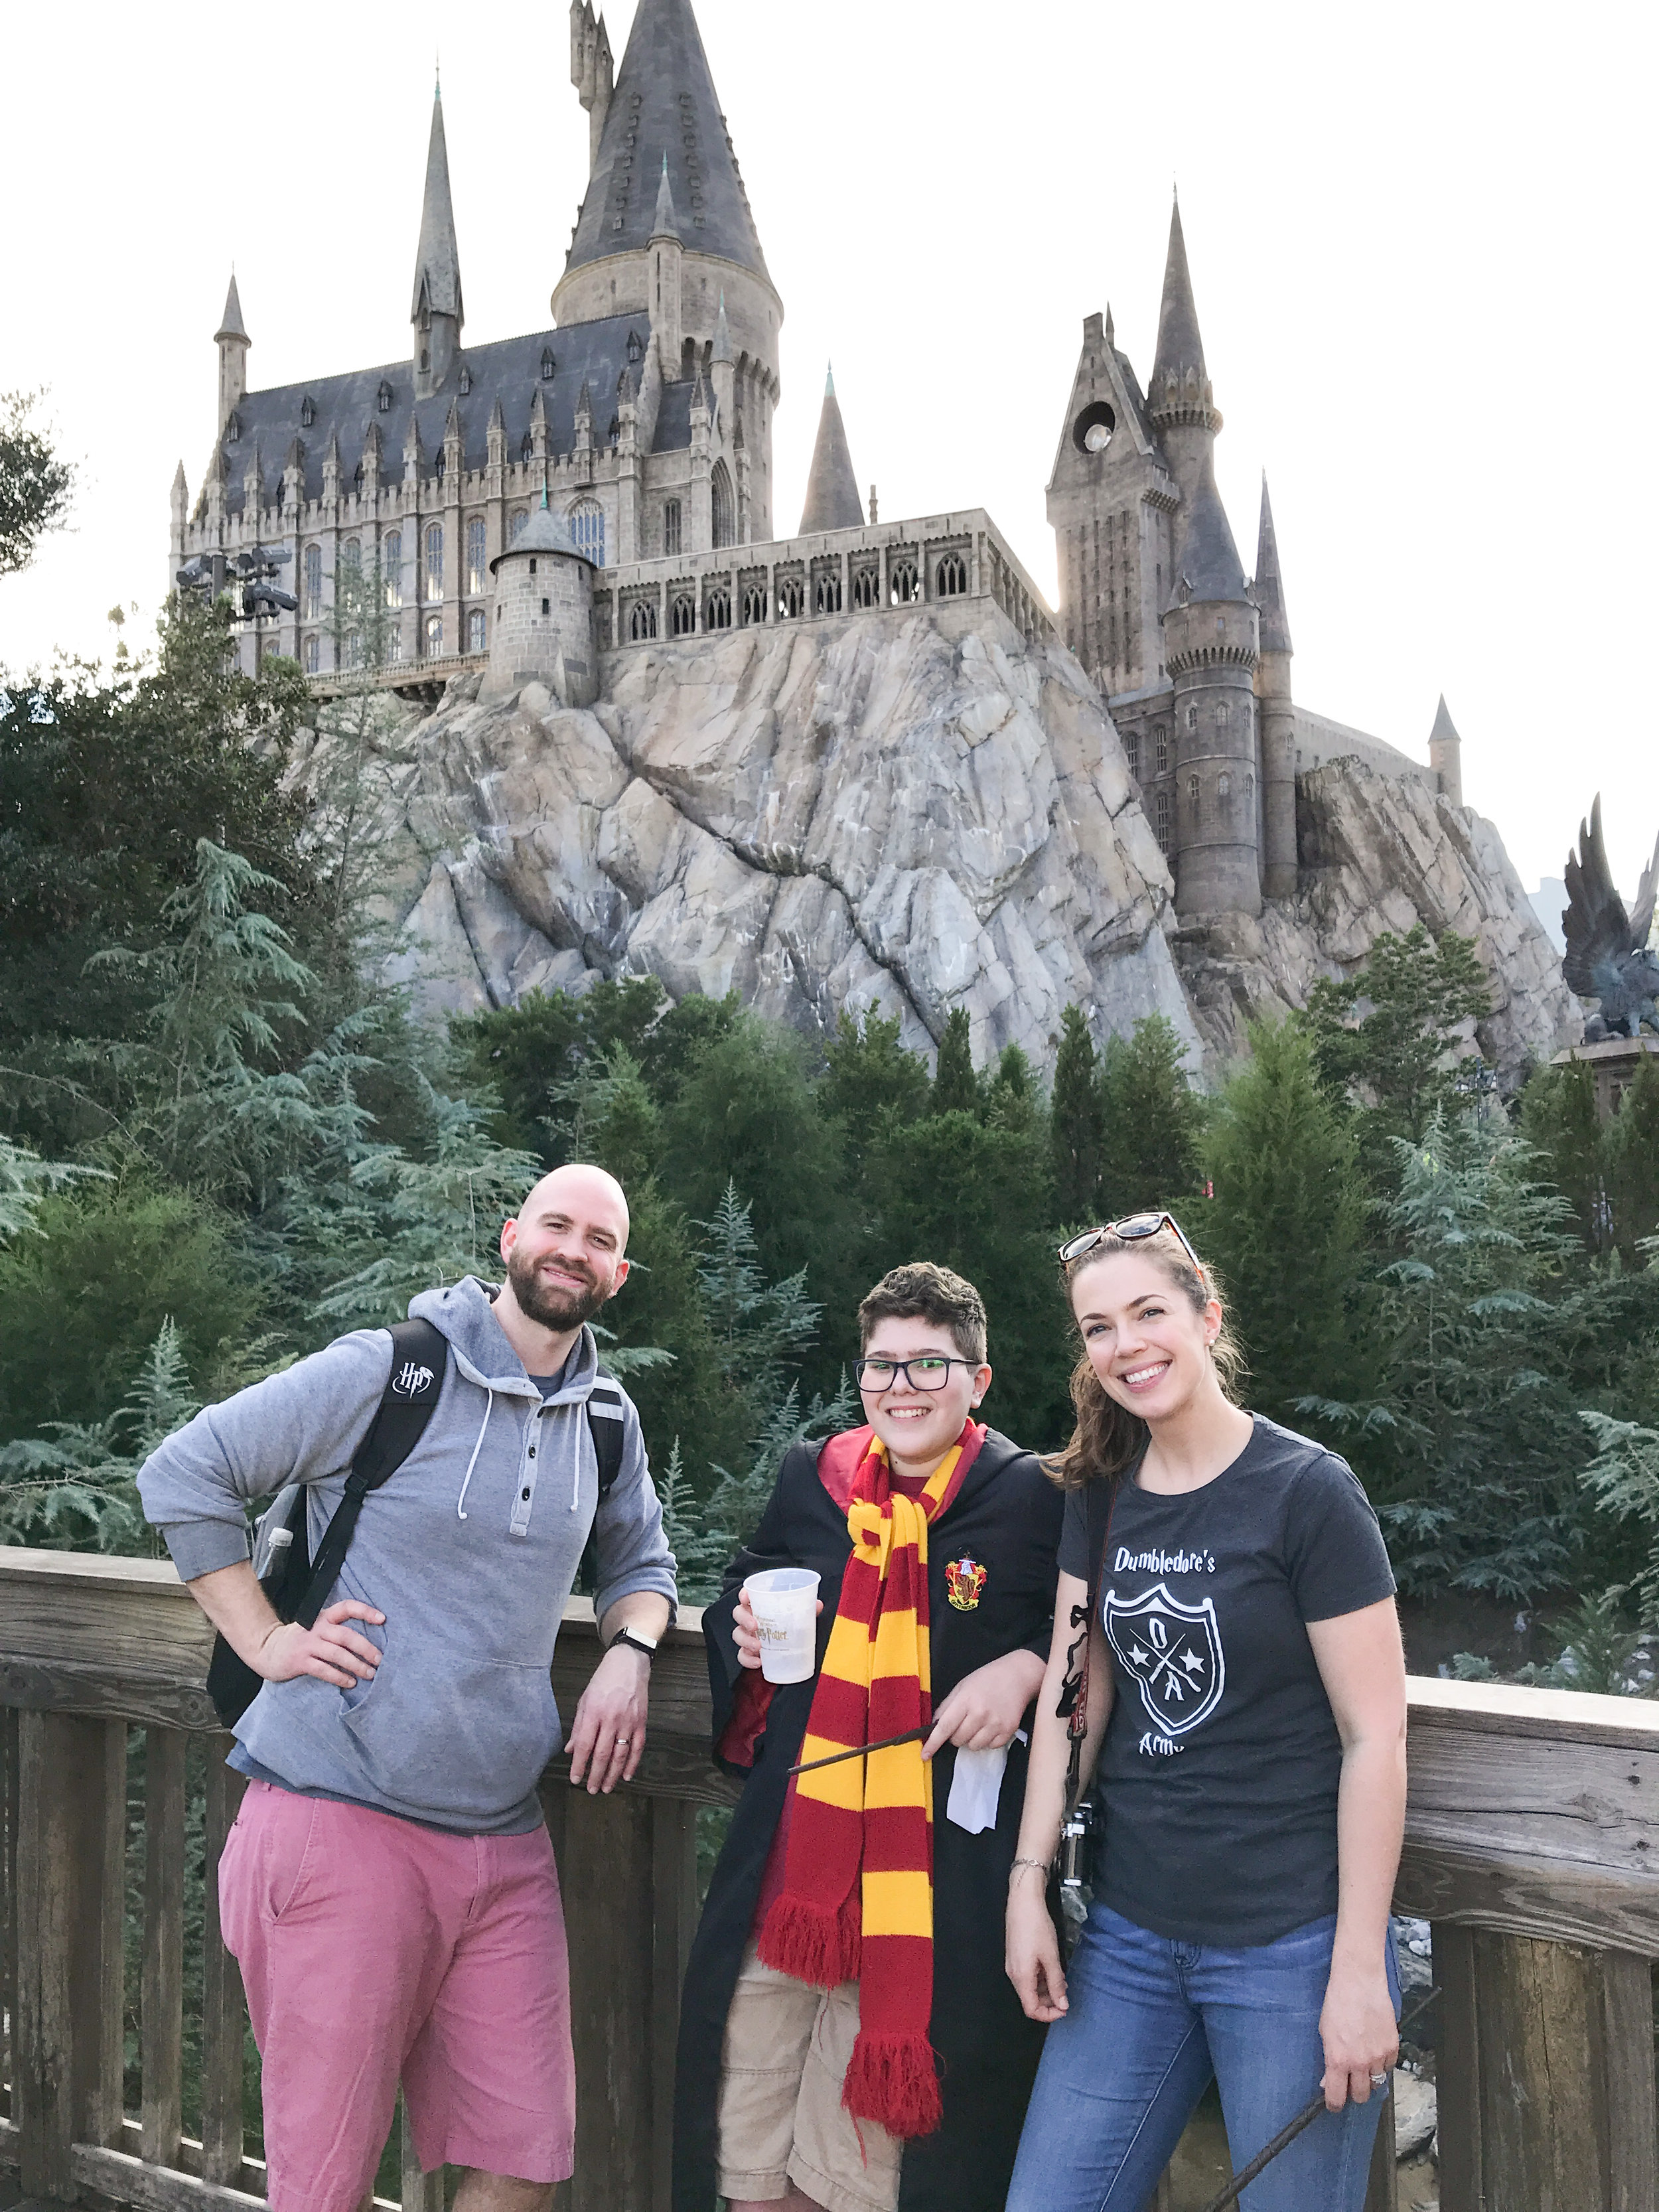 We surprised our nephew with a trip to Universal Studios- he was SO excited, and we had a blast